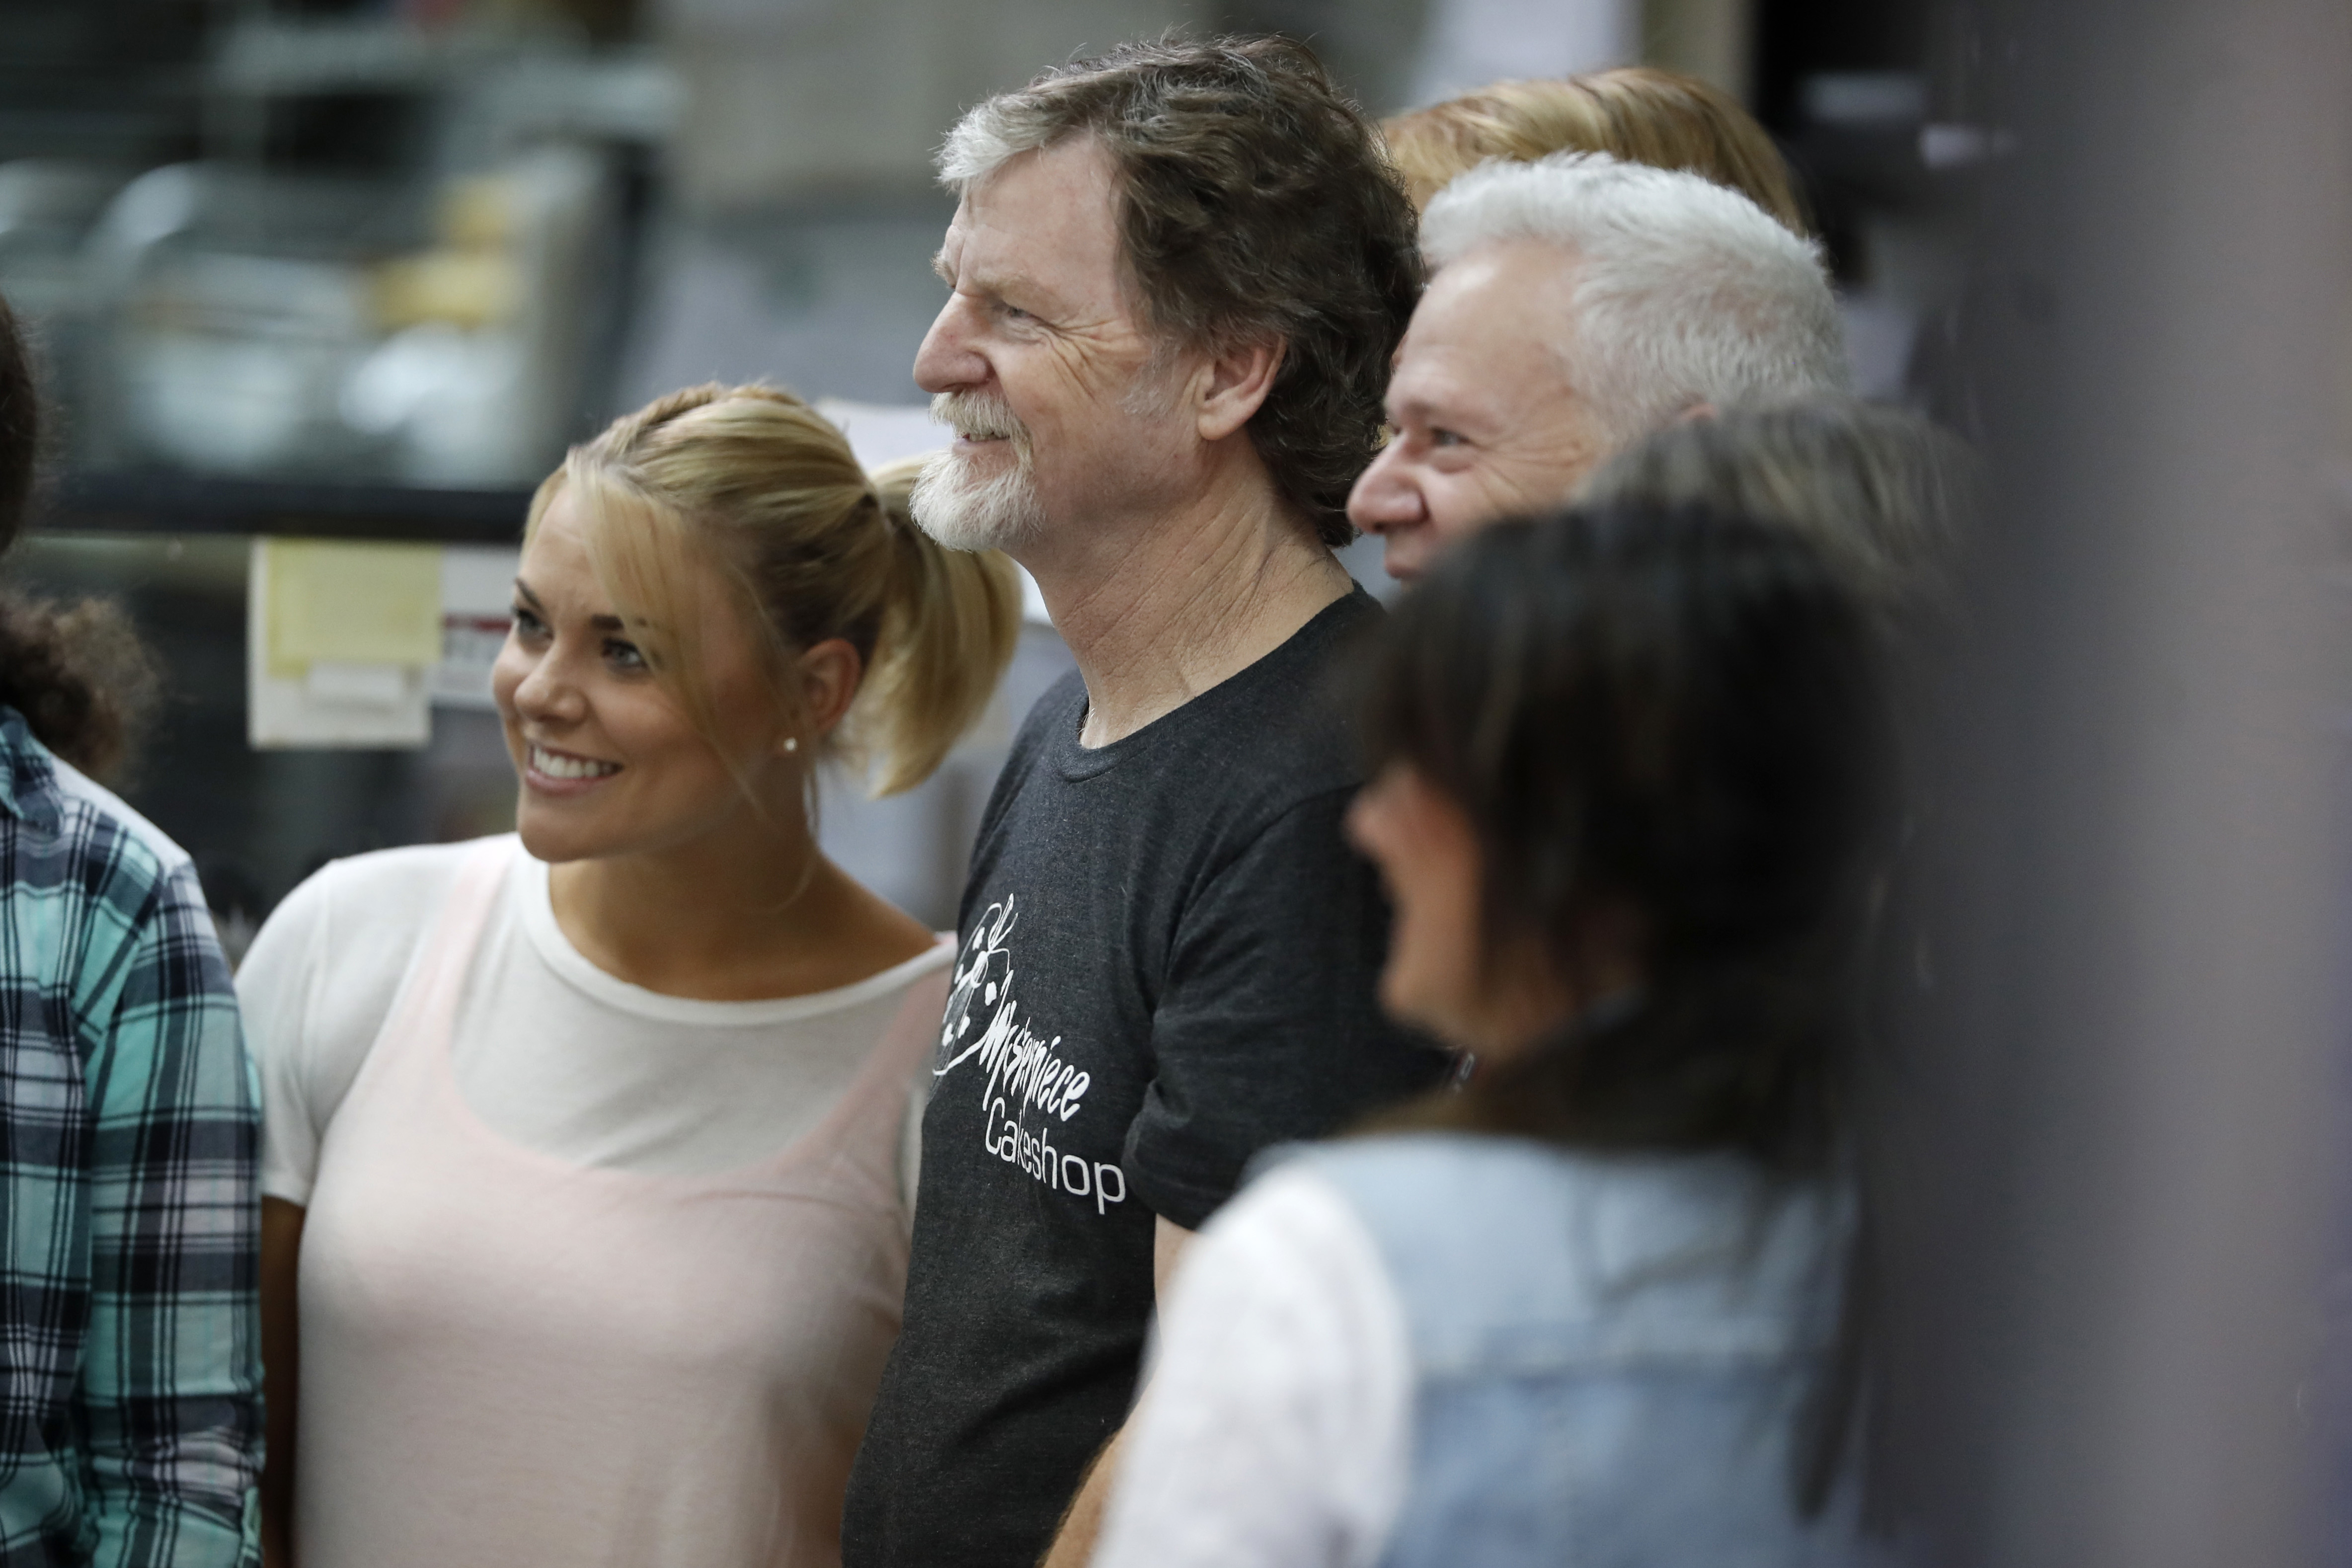 Baker Jack Phillips, center, owner of Masterpiece Cakeshop, is surrounded by supporters for a cellphone photo inside his shop after the U.S. Supreme Court ruled in his favor, Monday, June 4, 2018.